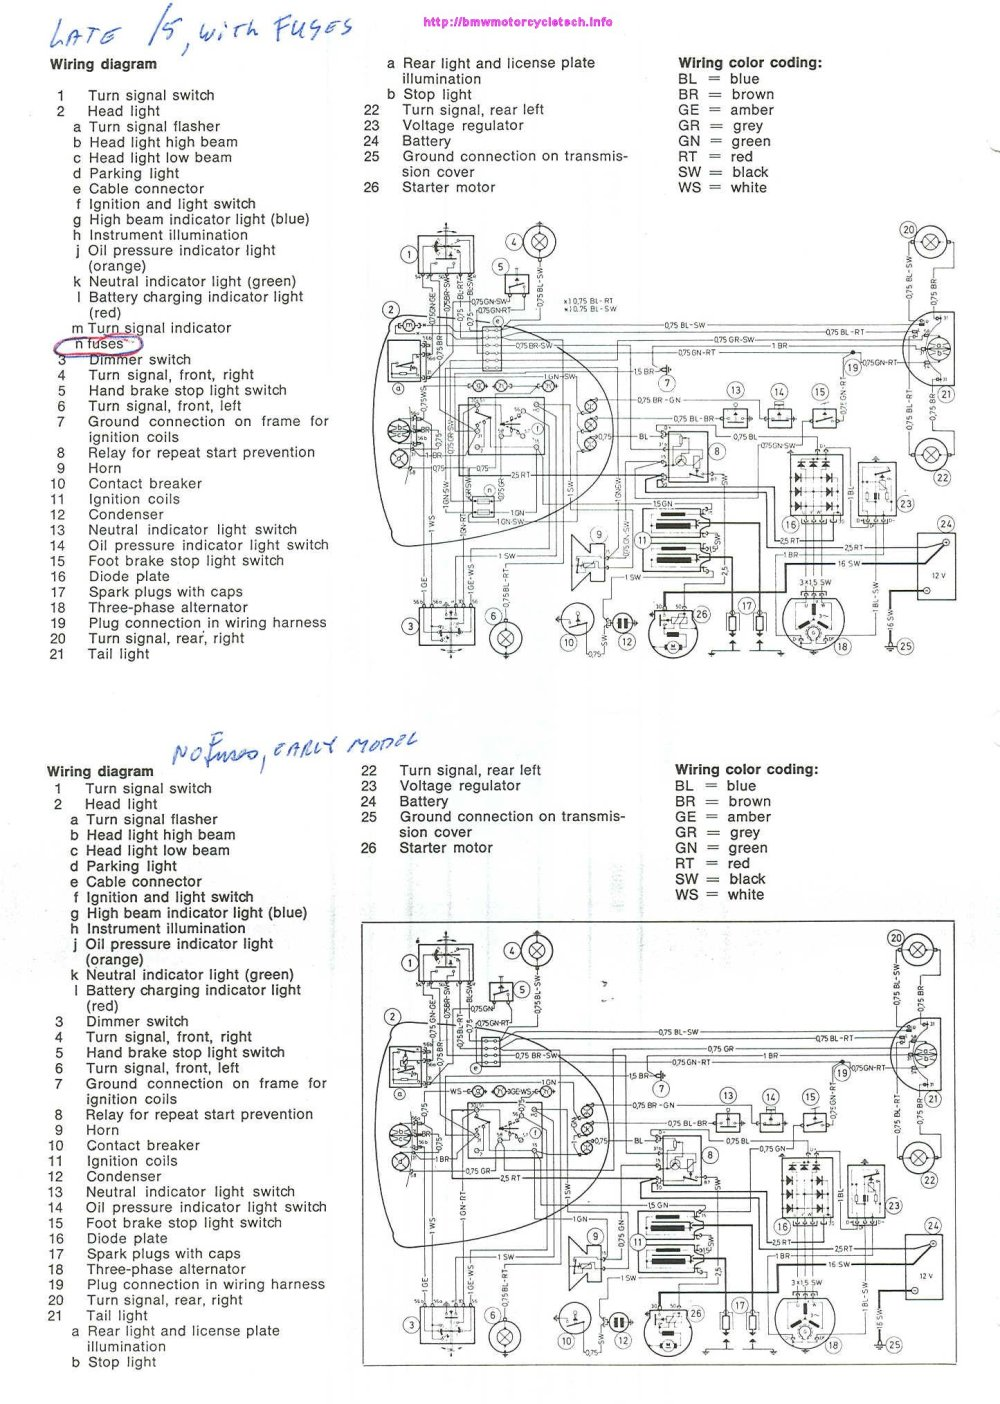 medium resolution of 38f schematic diagrams for both early and late 5 early model had no fuses set your browser to expand the image as needed it will be cleanly displayed